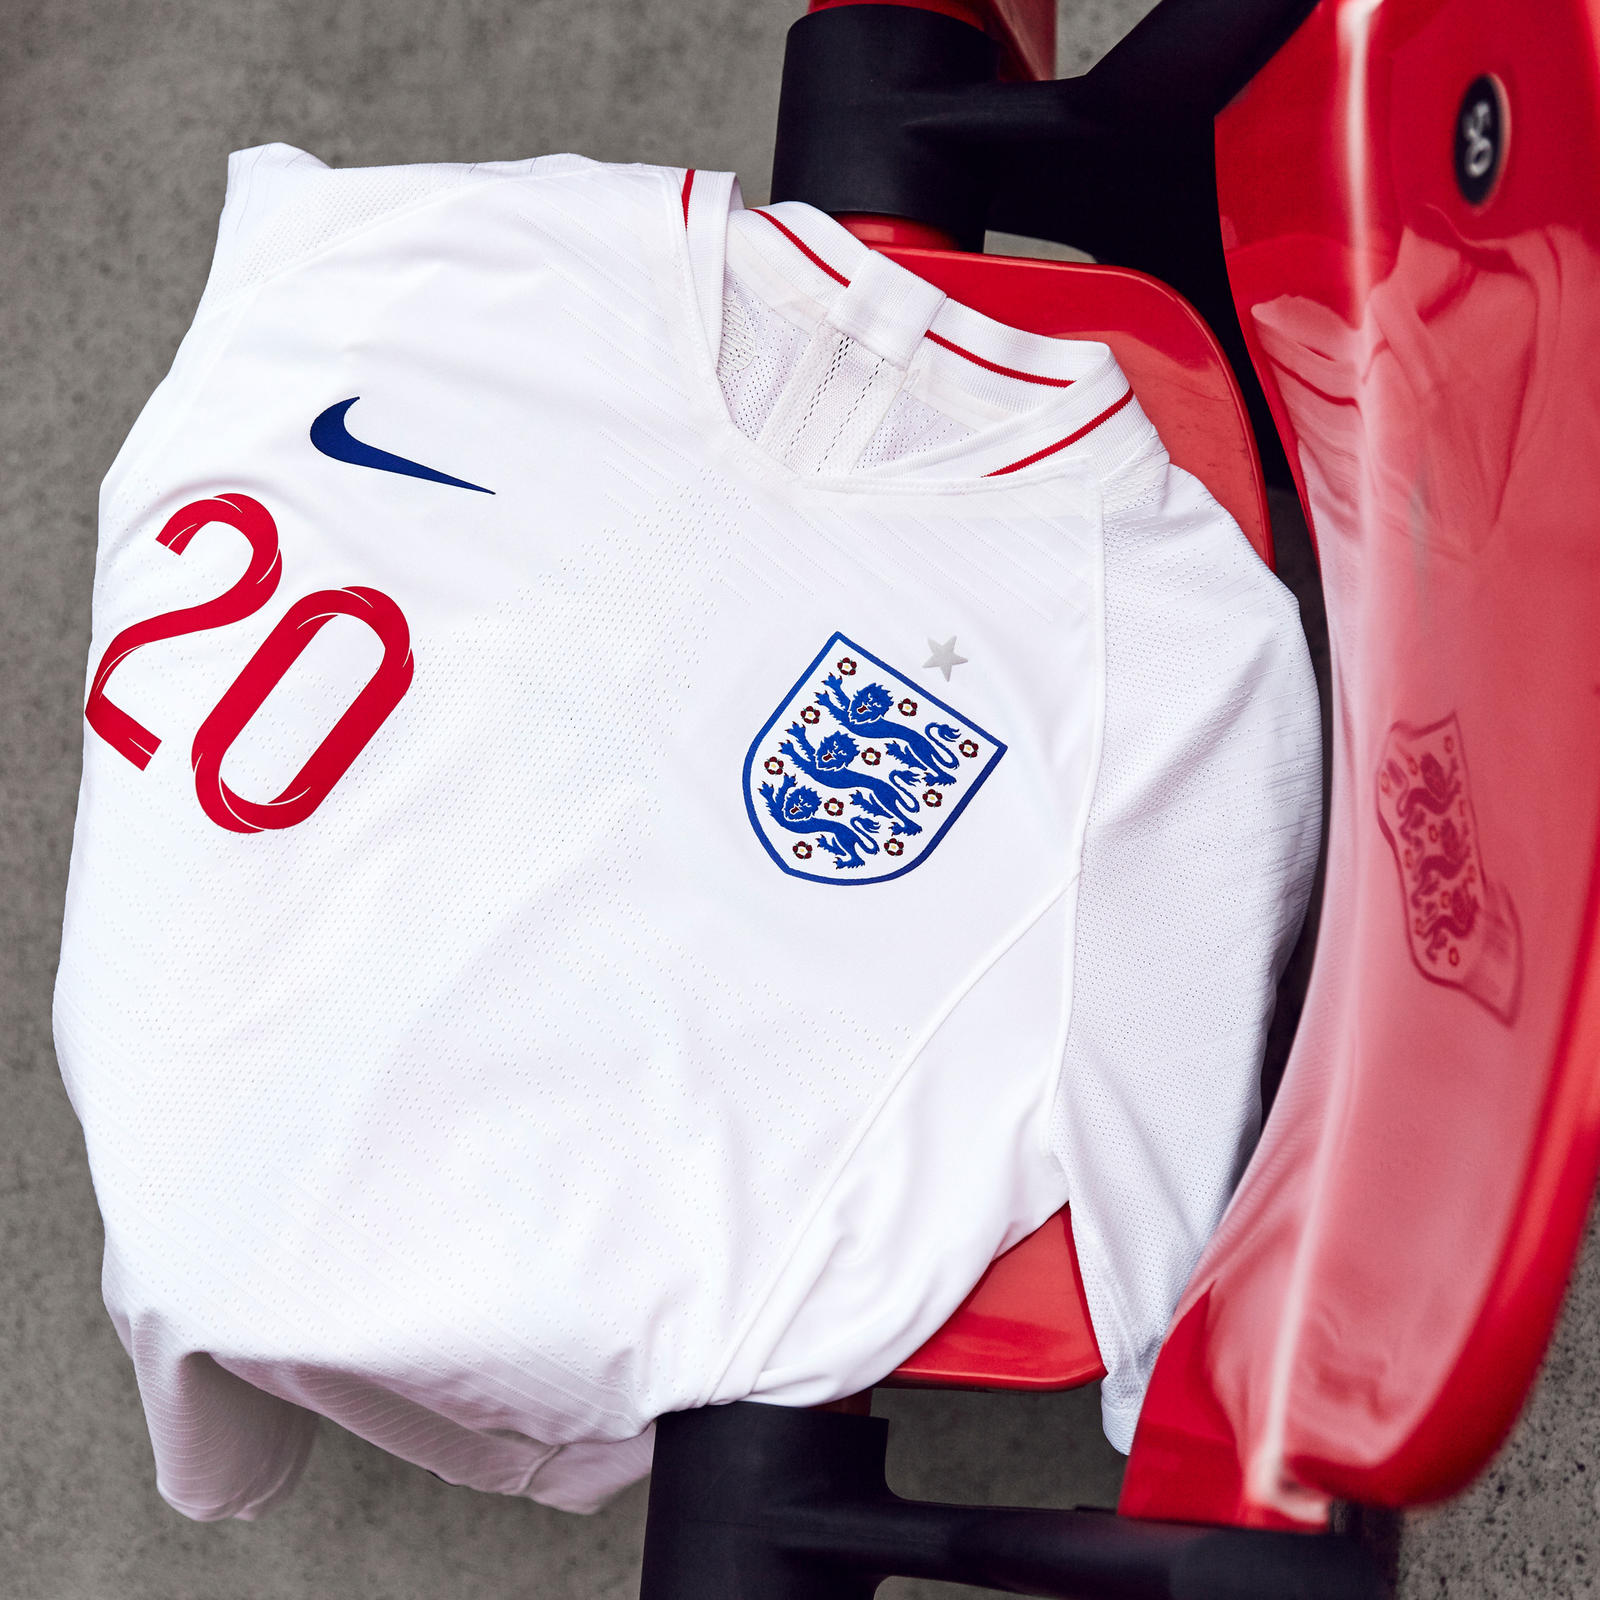 newest ee3c8 f6a82 Indispensably England - Nike News